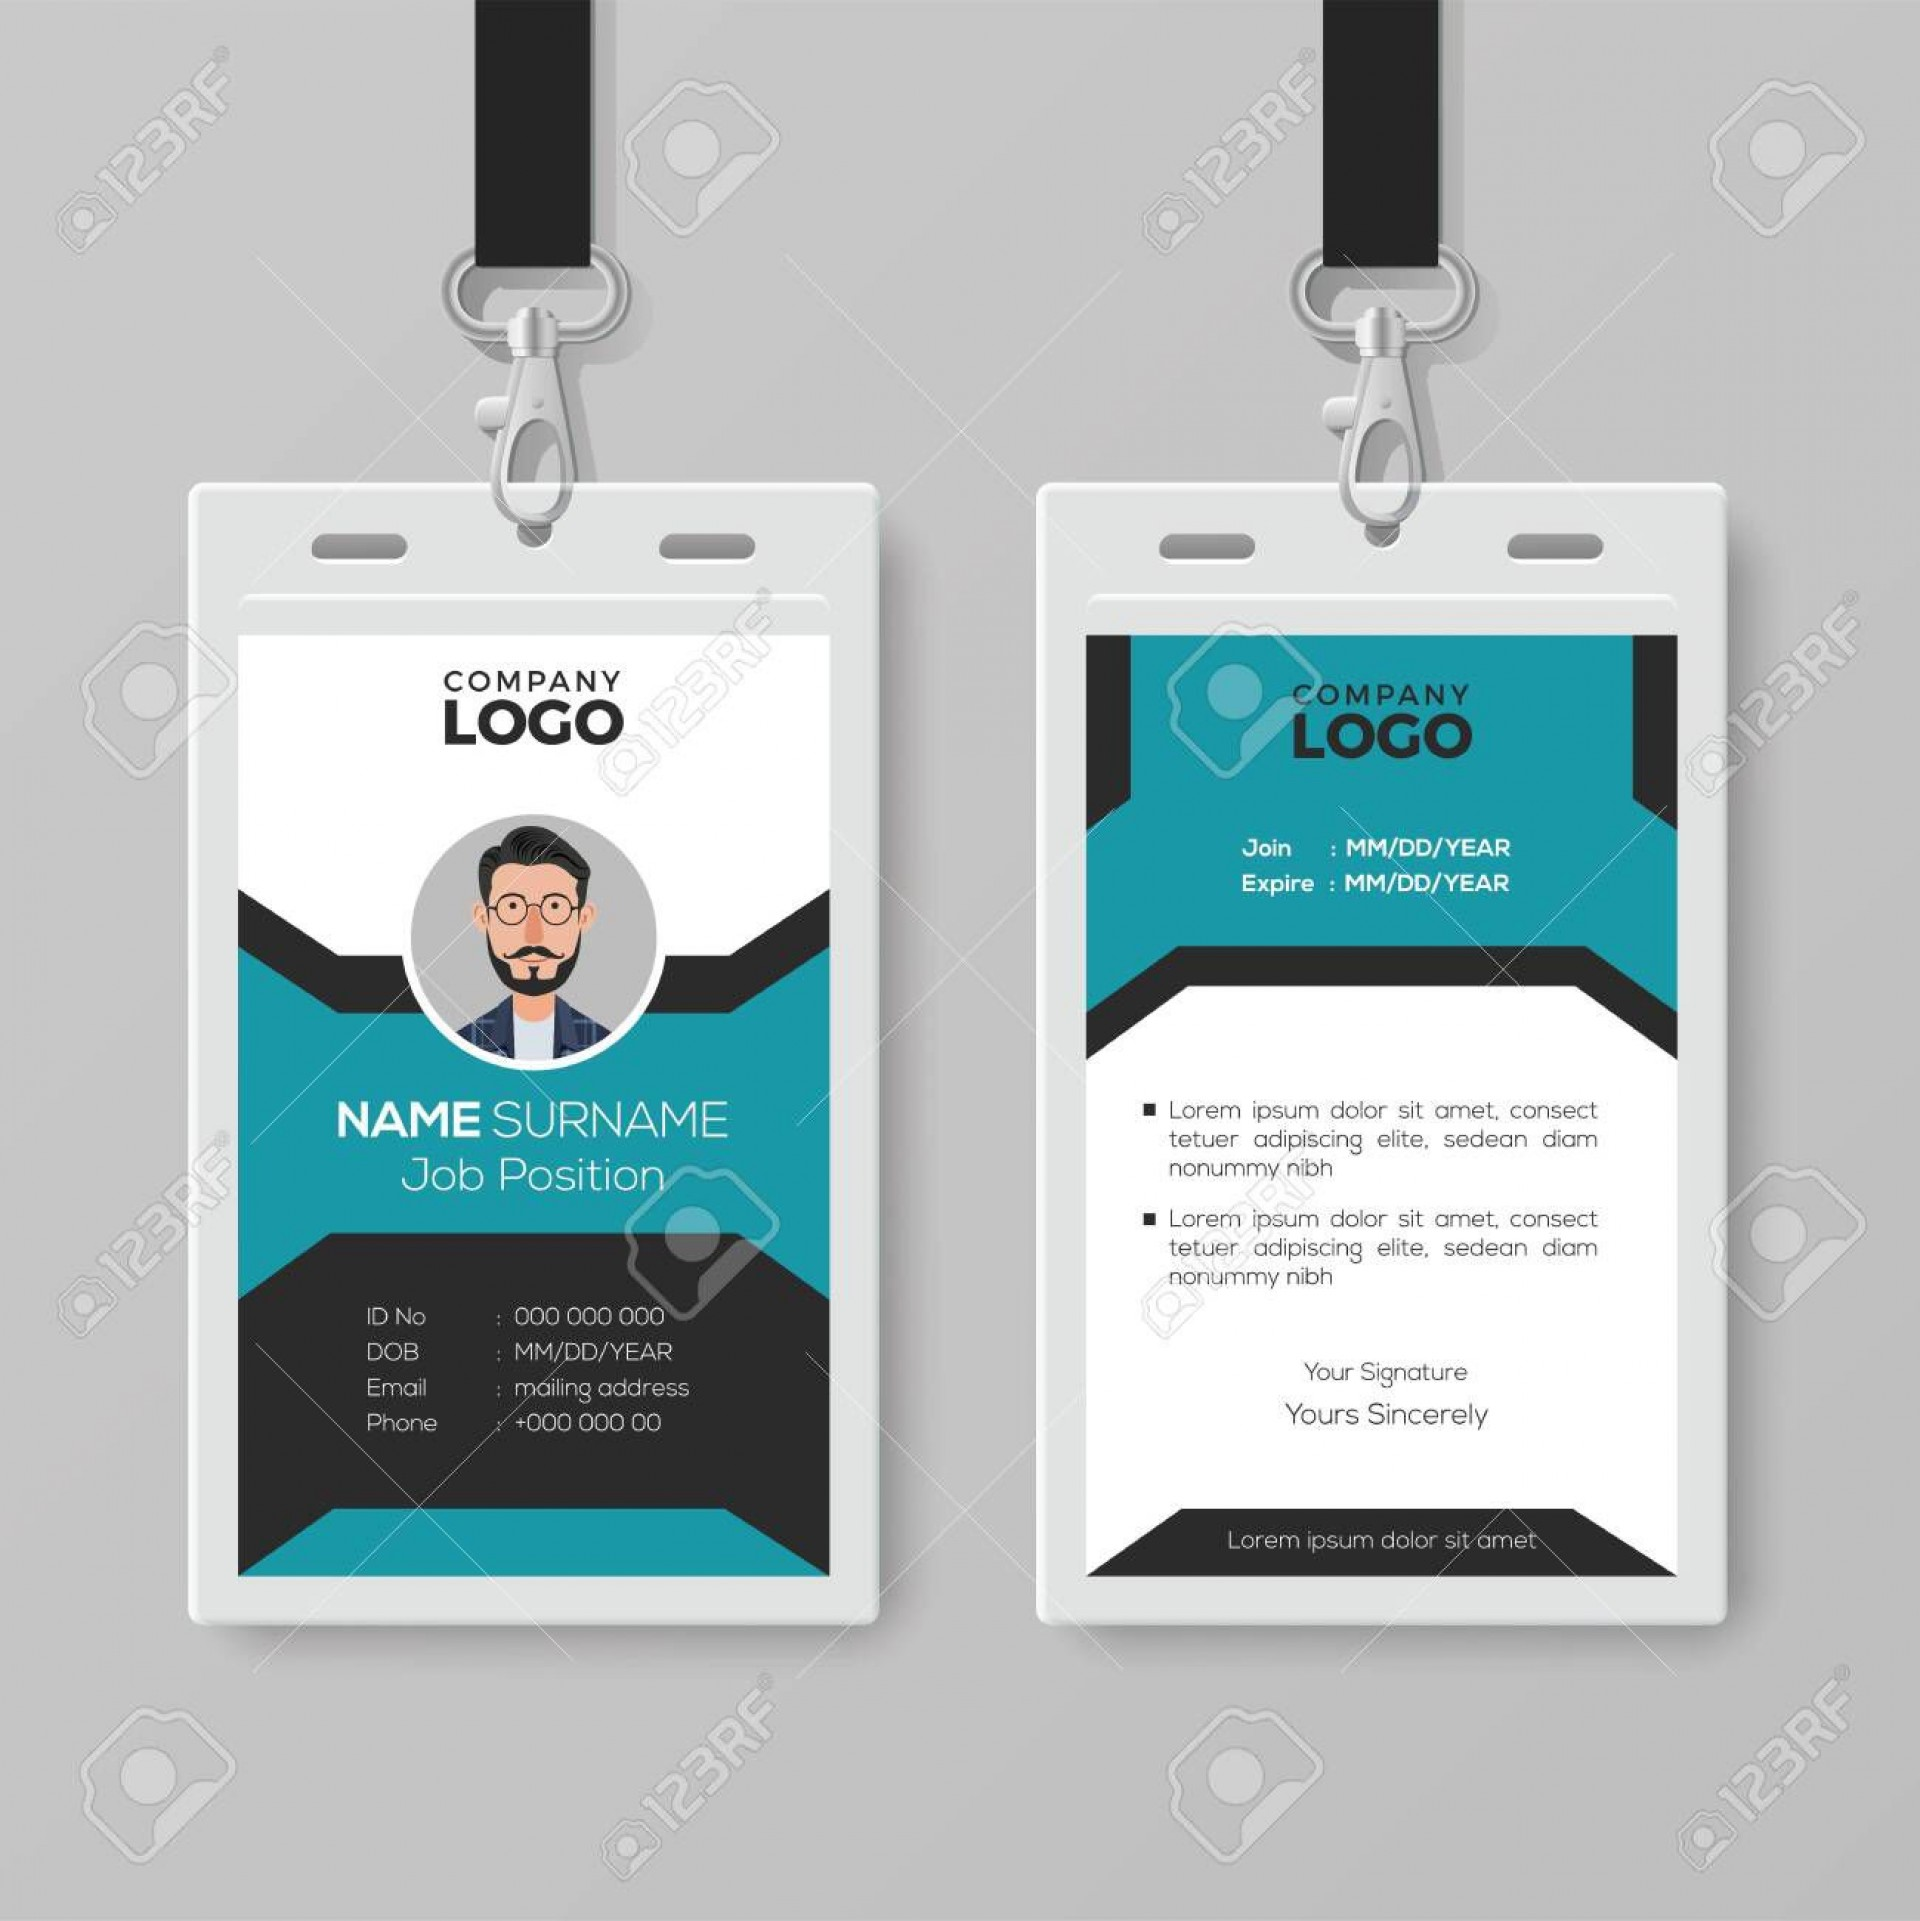 003 Impressive Employee Id Badge Template Highest Clarity  Avery Card Free Download Word1920